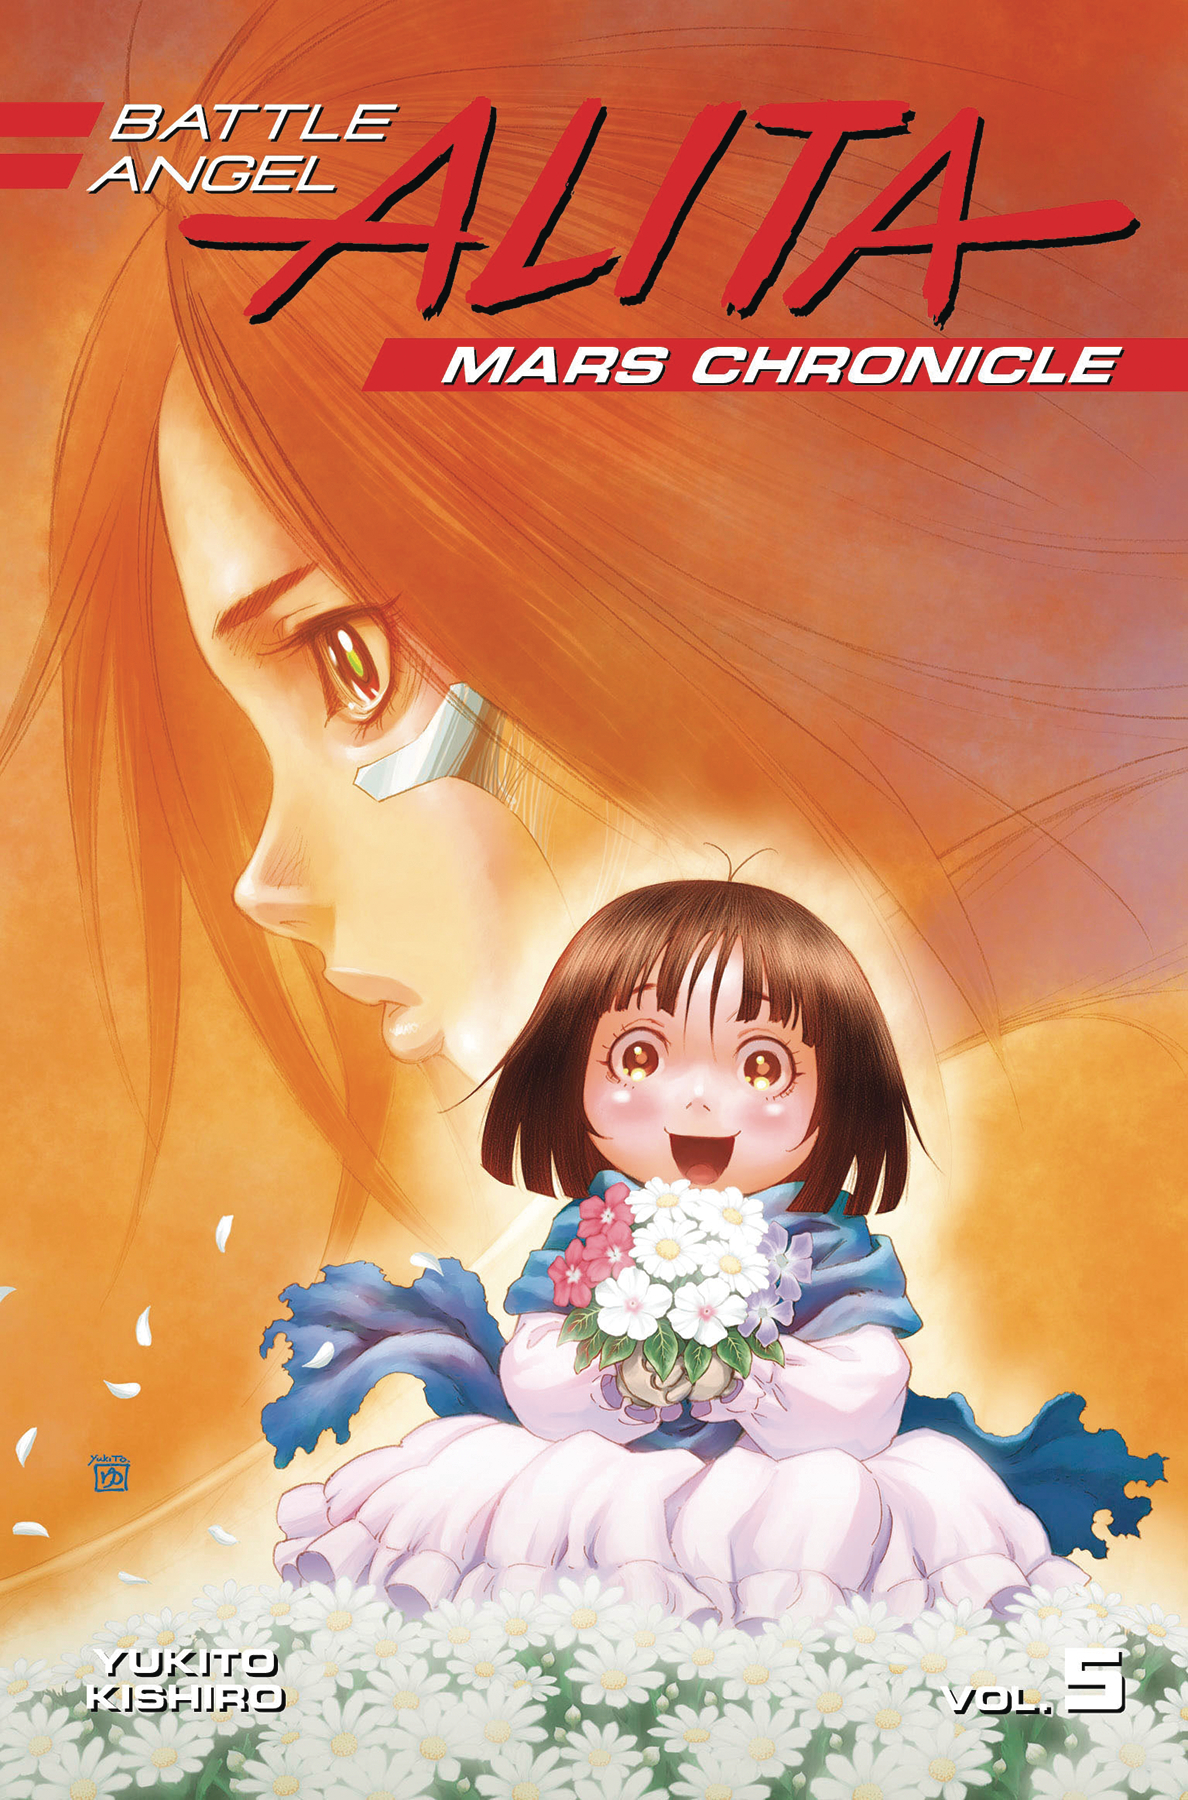 BATTLE ANGEL ALITA MARS CHRONICLE GN VOL 05